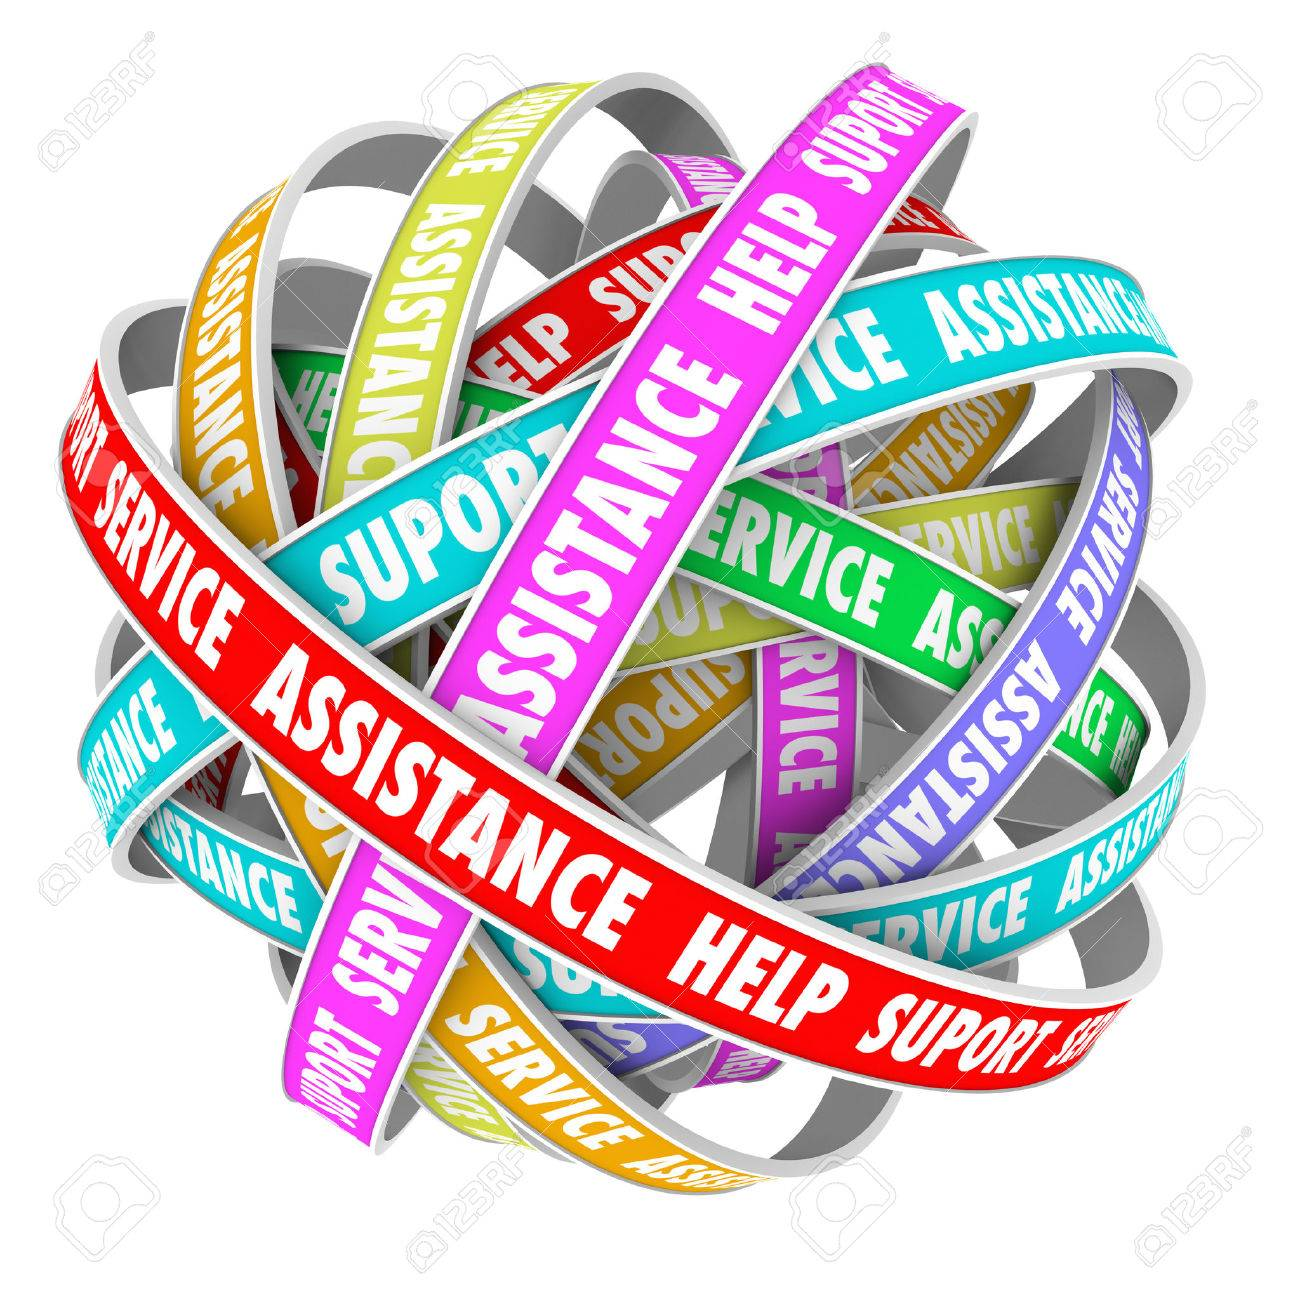 Support, Assistance, Help and Support words on an endless cycle of ribbons or roads in a 3d pattern - 29194066